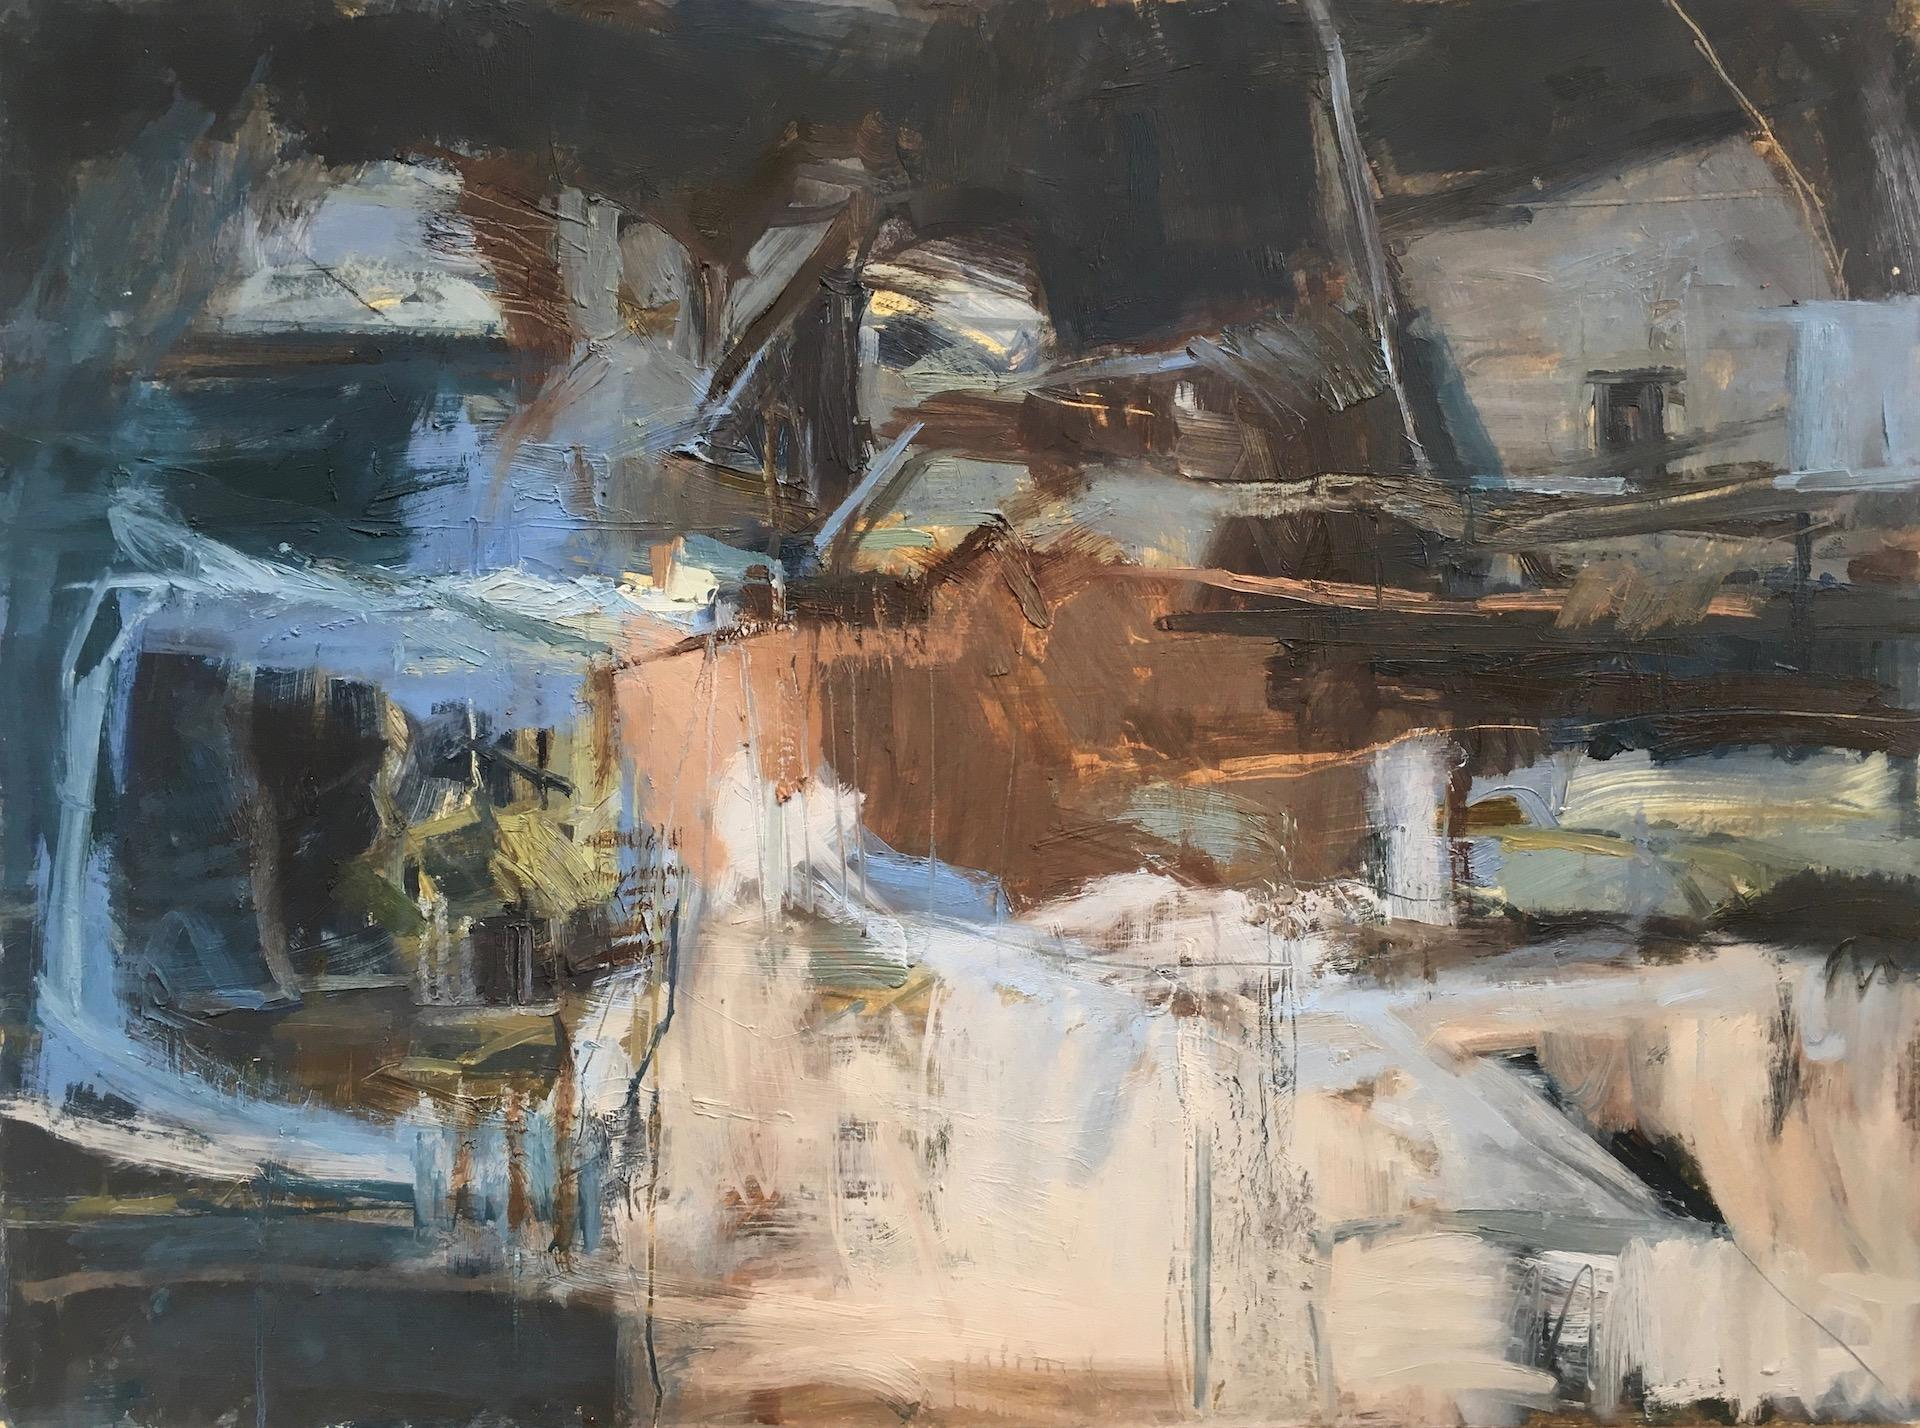 Janet Keith, Edge of the Earth, Original Abstract Landscape Painting